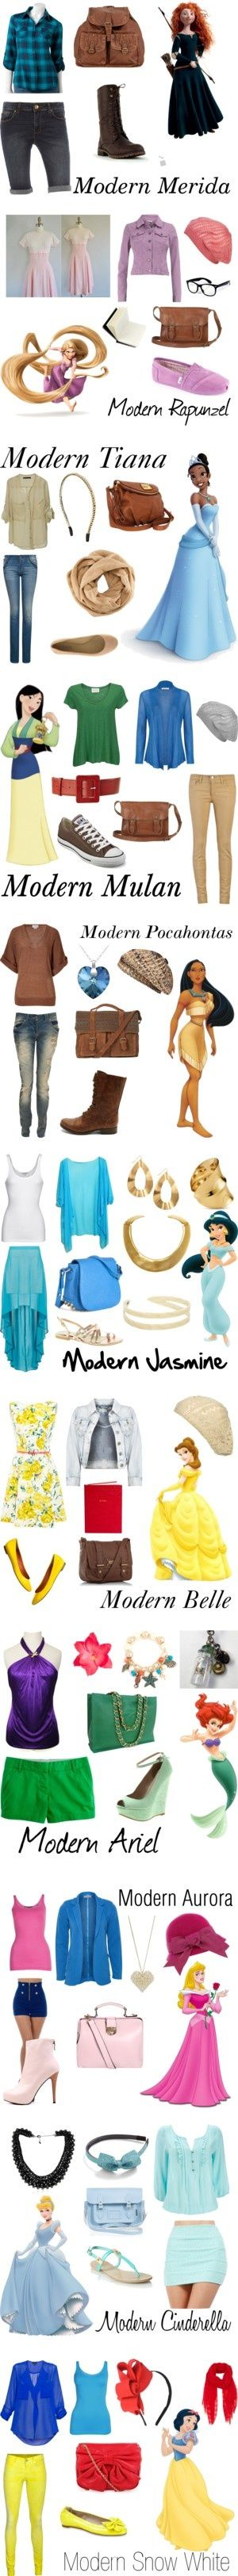 Modern Disney princesses